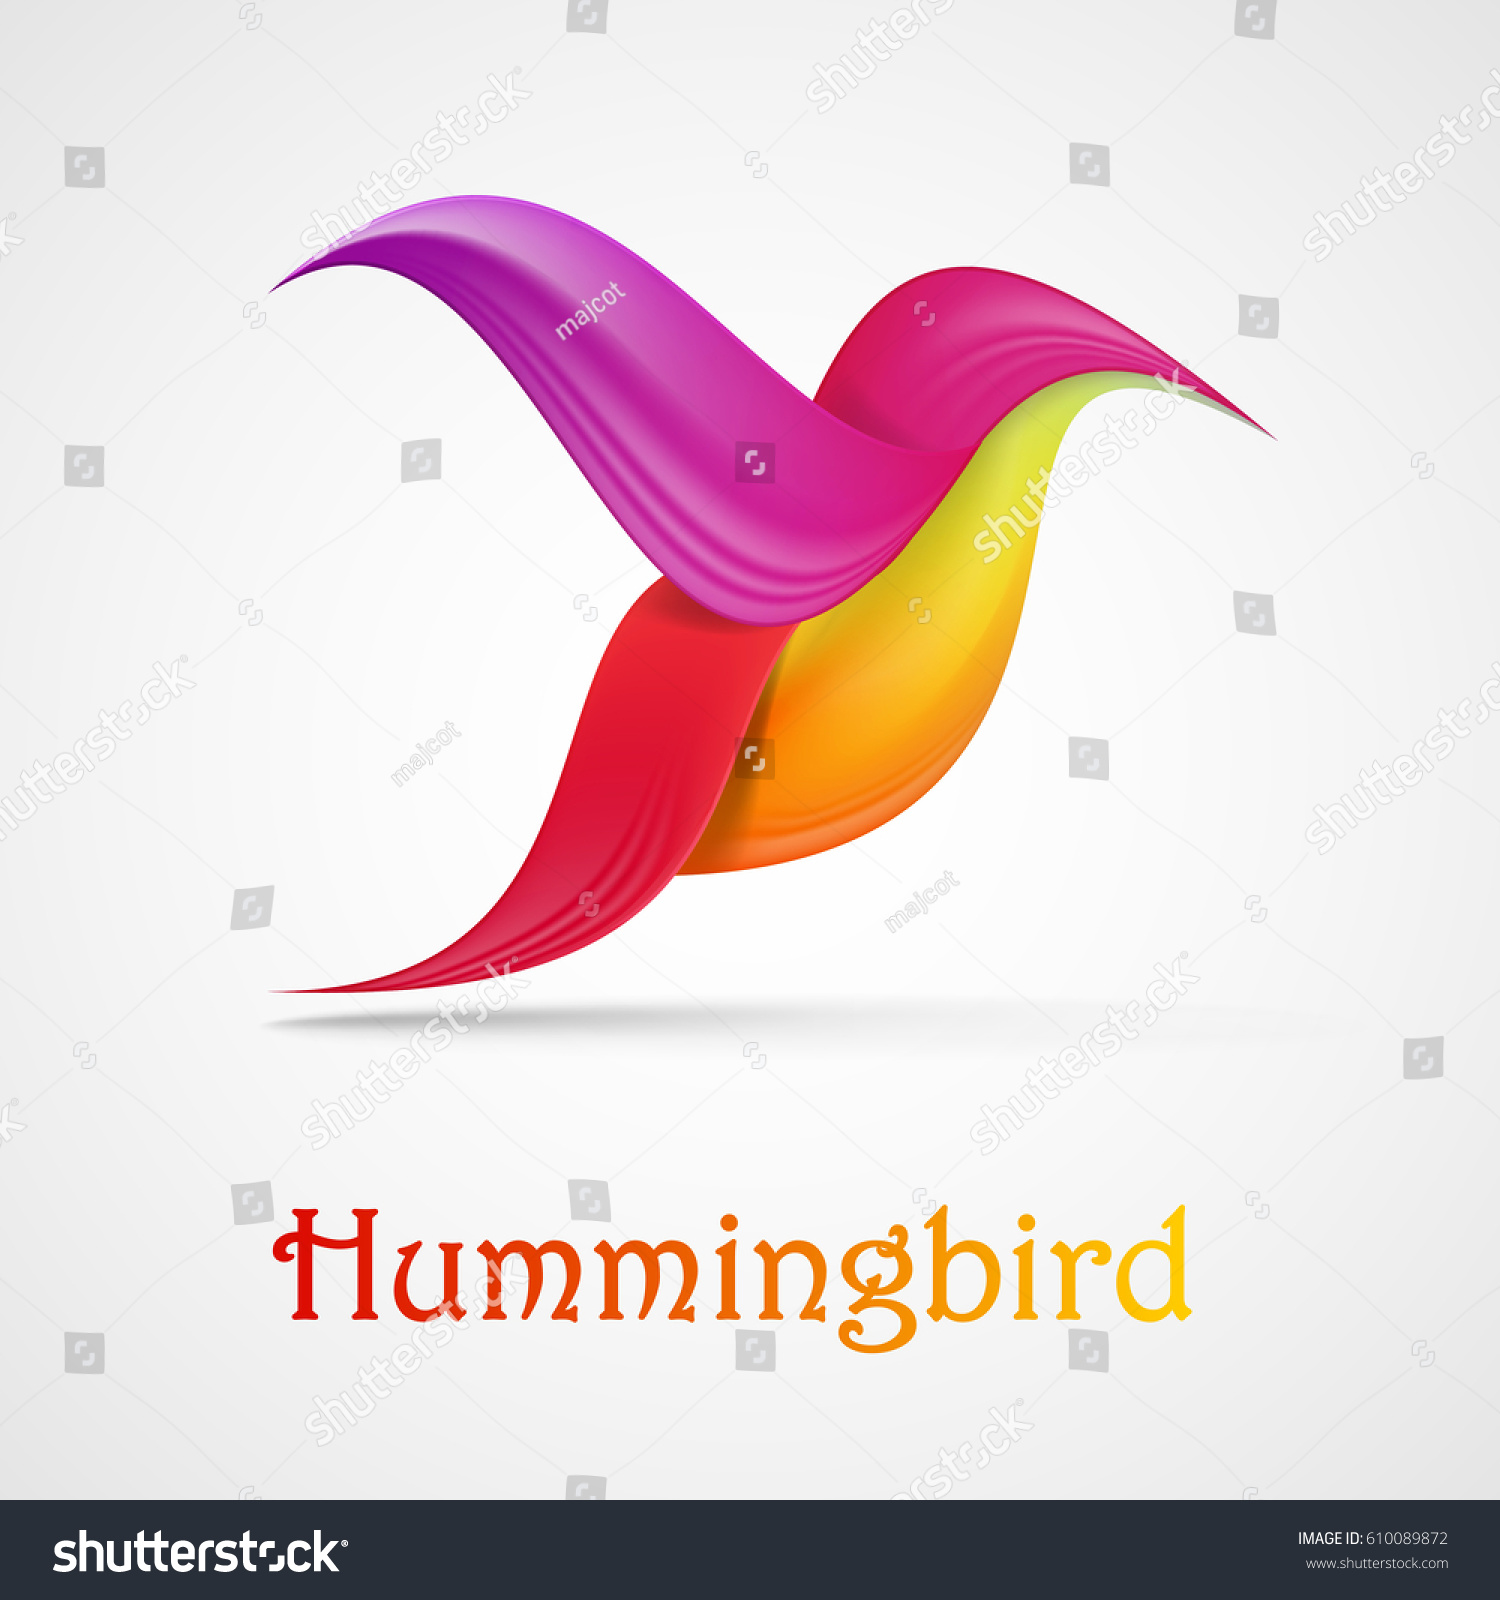 Hummingbird Abstract Symbol Illustration Isolated On Stock